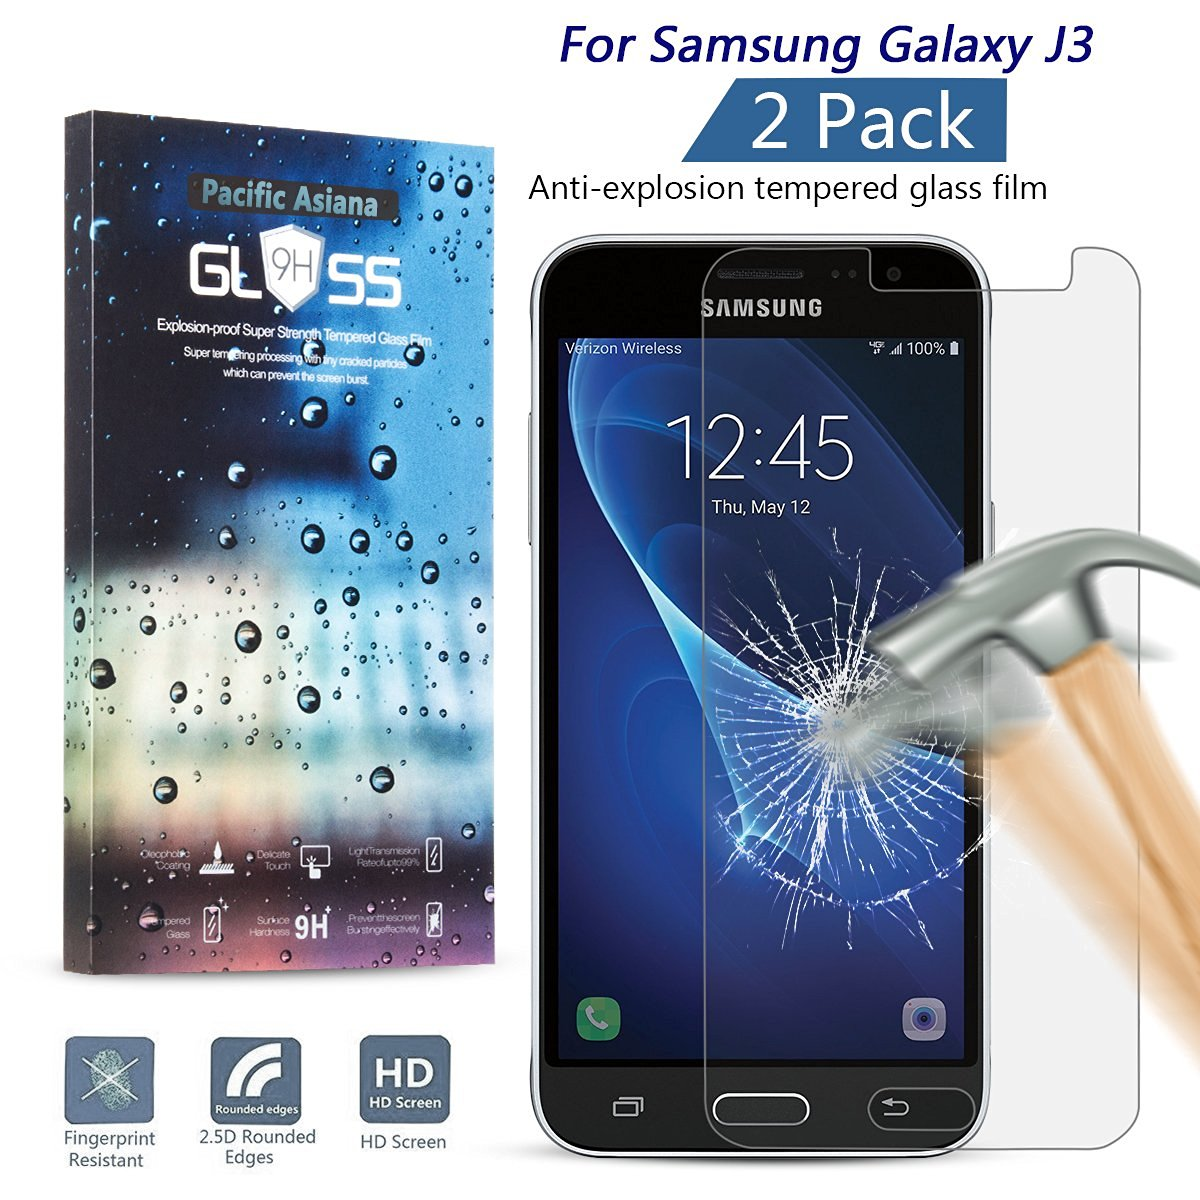 [2Pack] Galaxy J3 Screen Protector, Pacific Asiana 0.3mm (HD) Clear Ballistic [Tempered Glass] Screen Cover Film, 9H Hardness Scratchproof Anti-fingerprint Bubble Free Skin Shield for Galaxy J3 (2016)